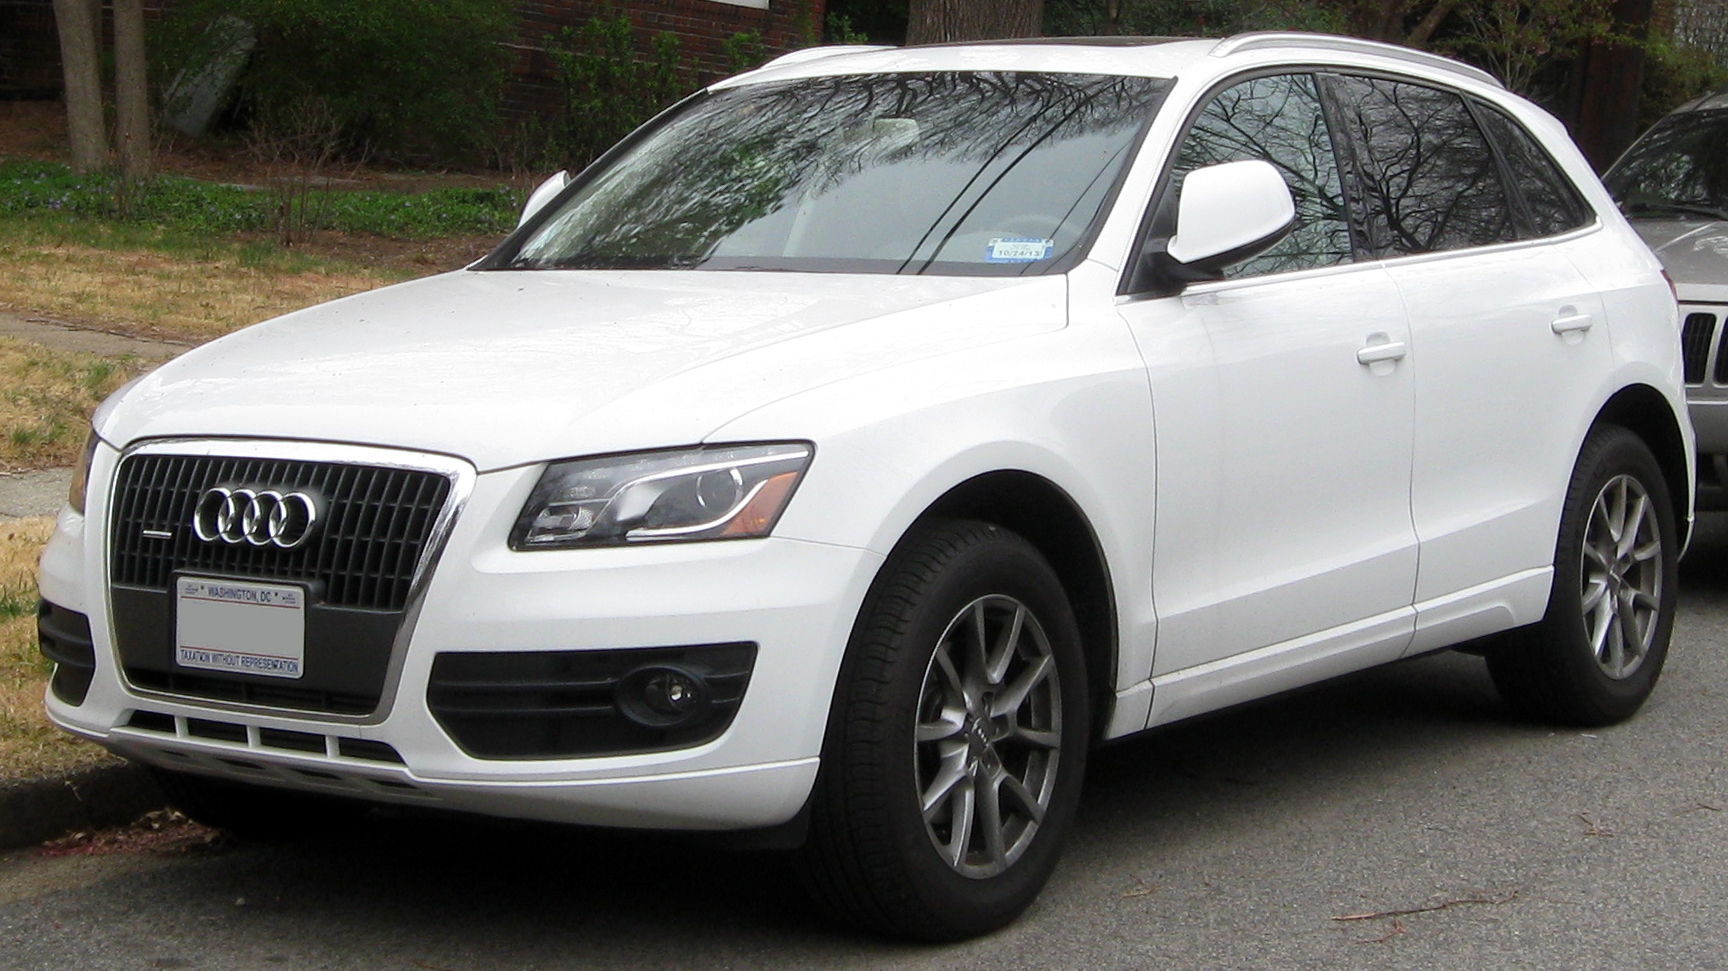 2016 Audi Q3 Quattro Parts and Accessories  amazoncom